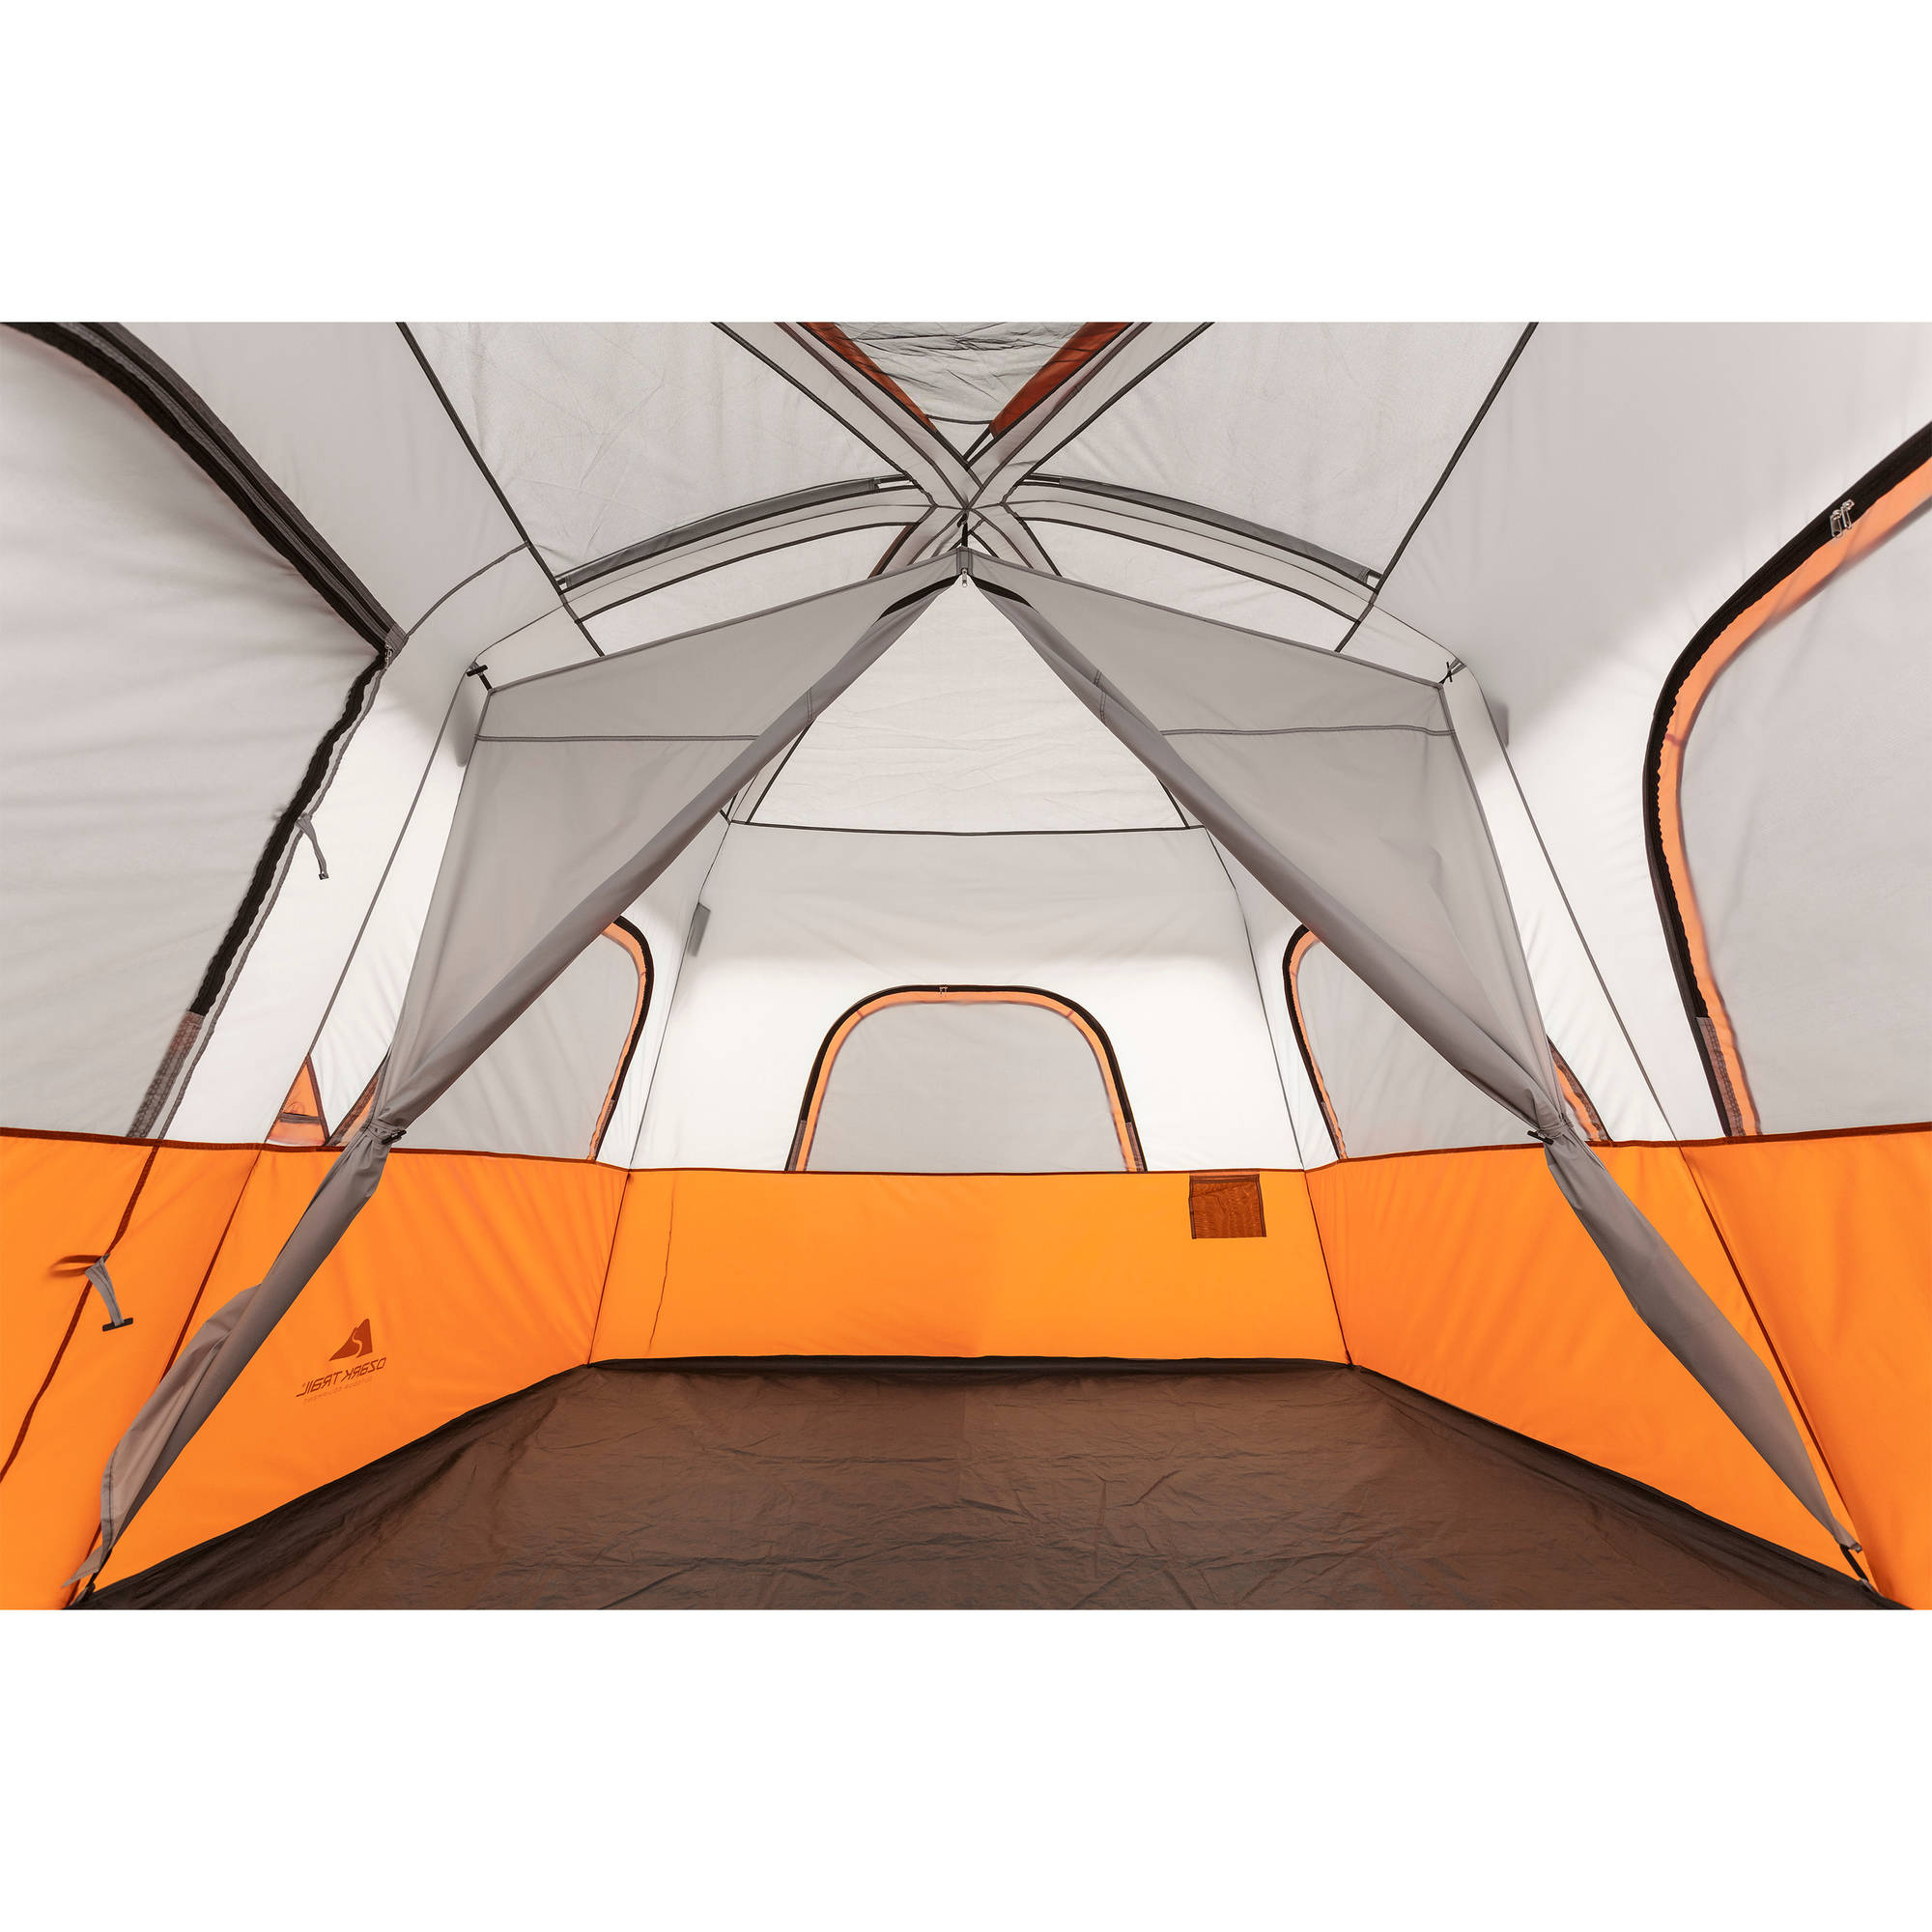 Ozark Trail 13u0027 x 9u0027 with 76 H Family Cabin Tent Sleeps 8 - Walmart.com  sc 1 st  Walmart & Ozark Trail 13u0027 x 9u0027 with 76